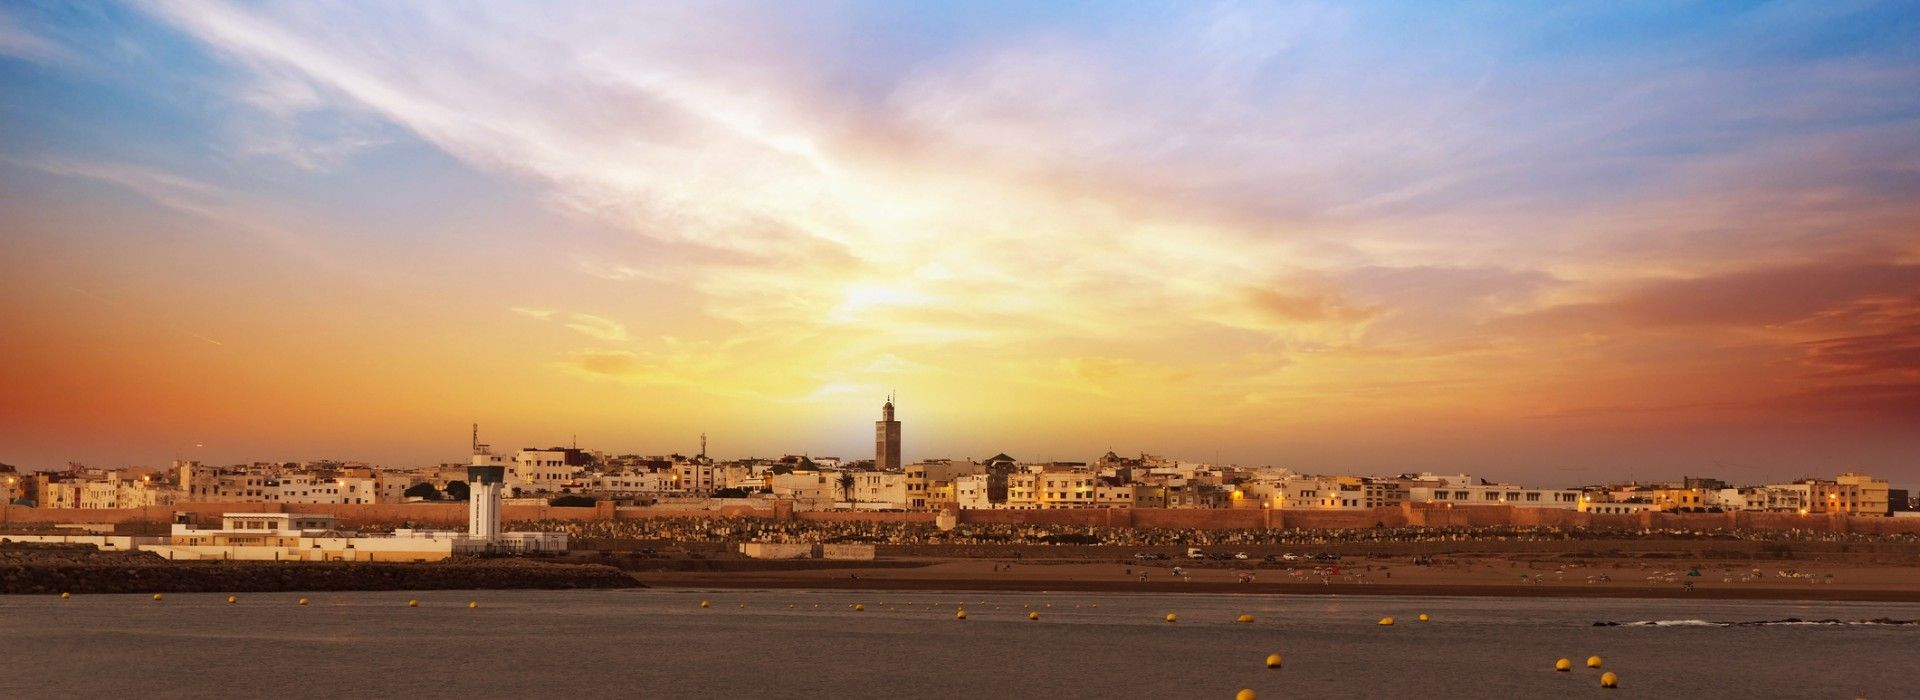 Cultural, religious and historic sites Tours in Marrakech